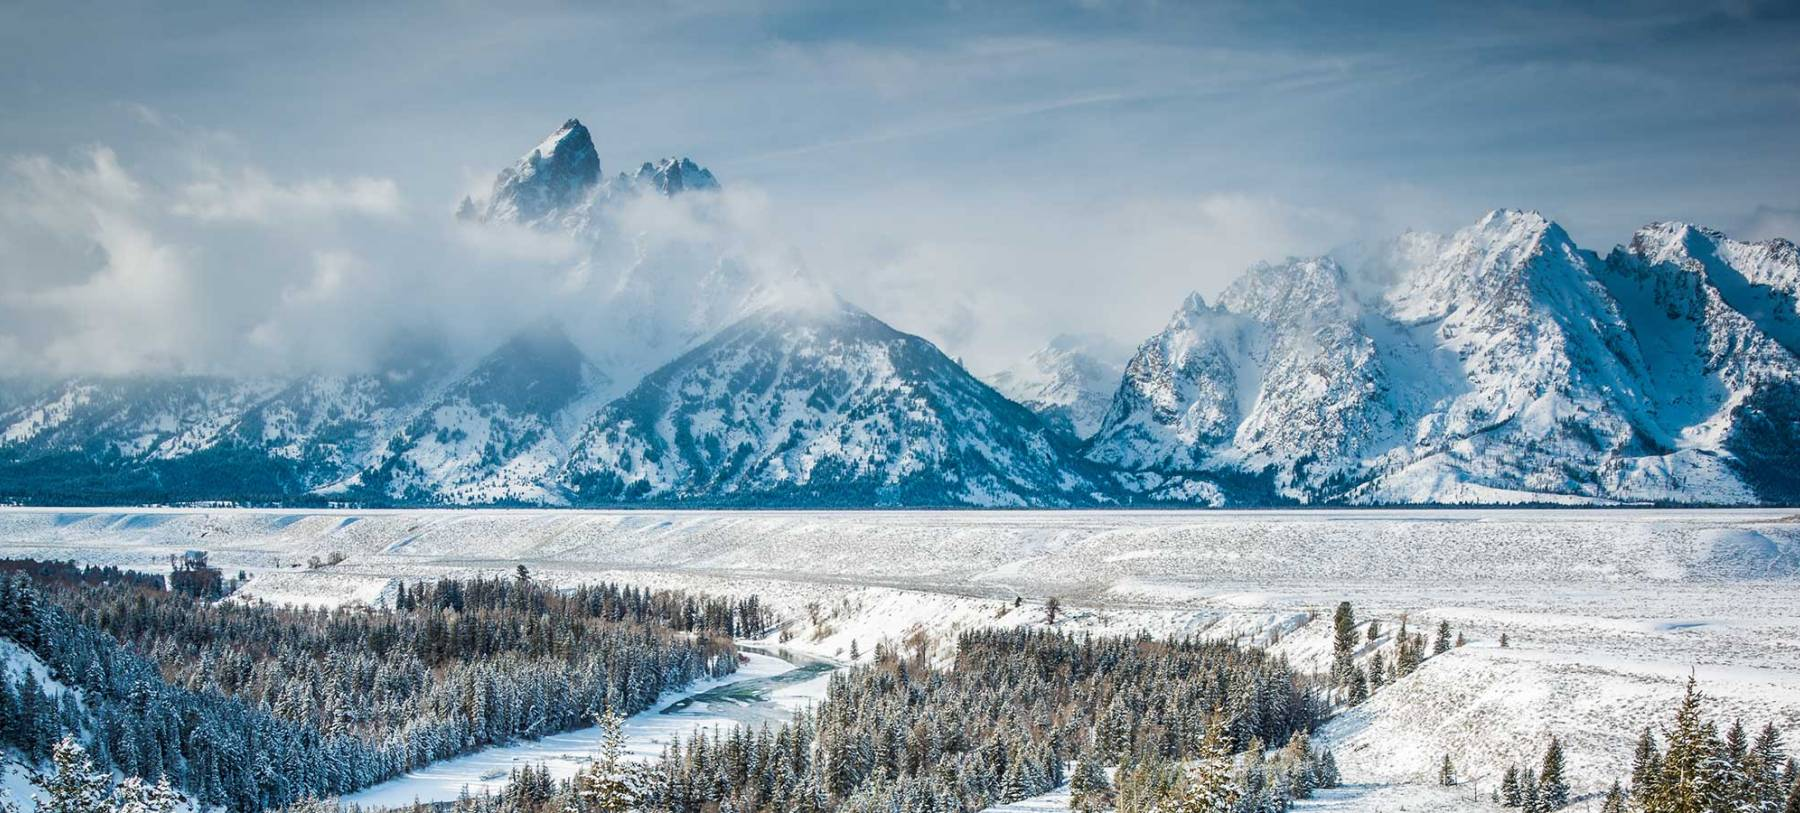 Tetons & Snake River In Winter